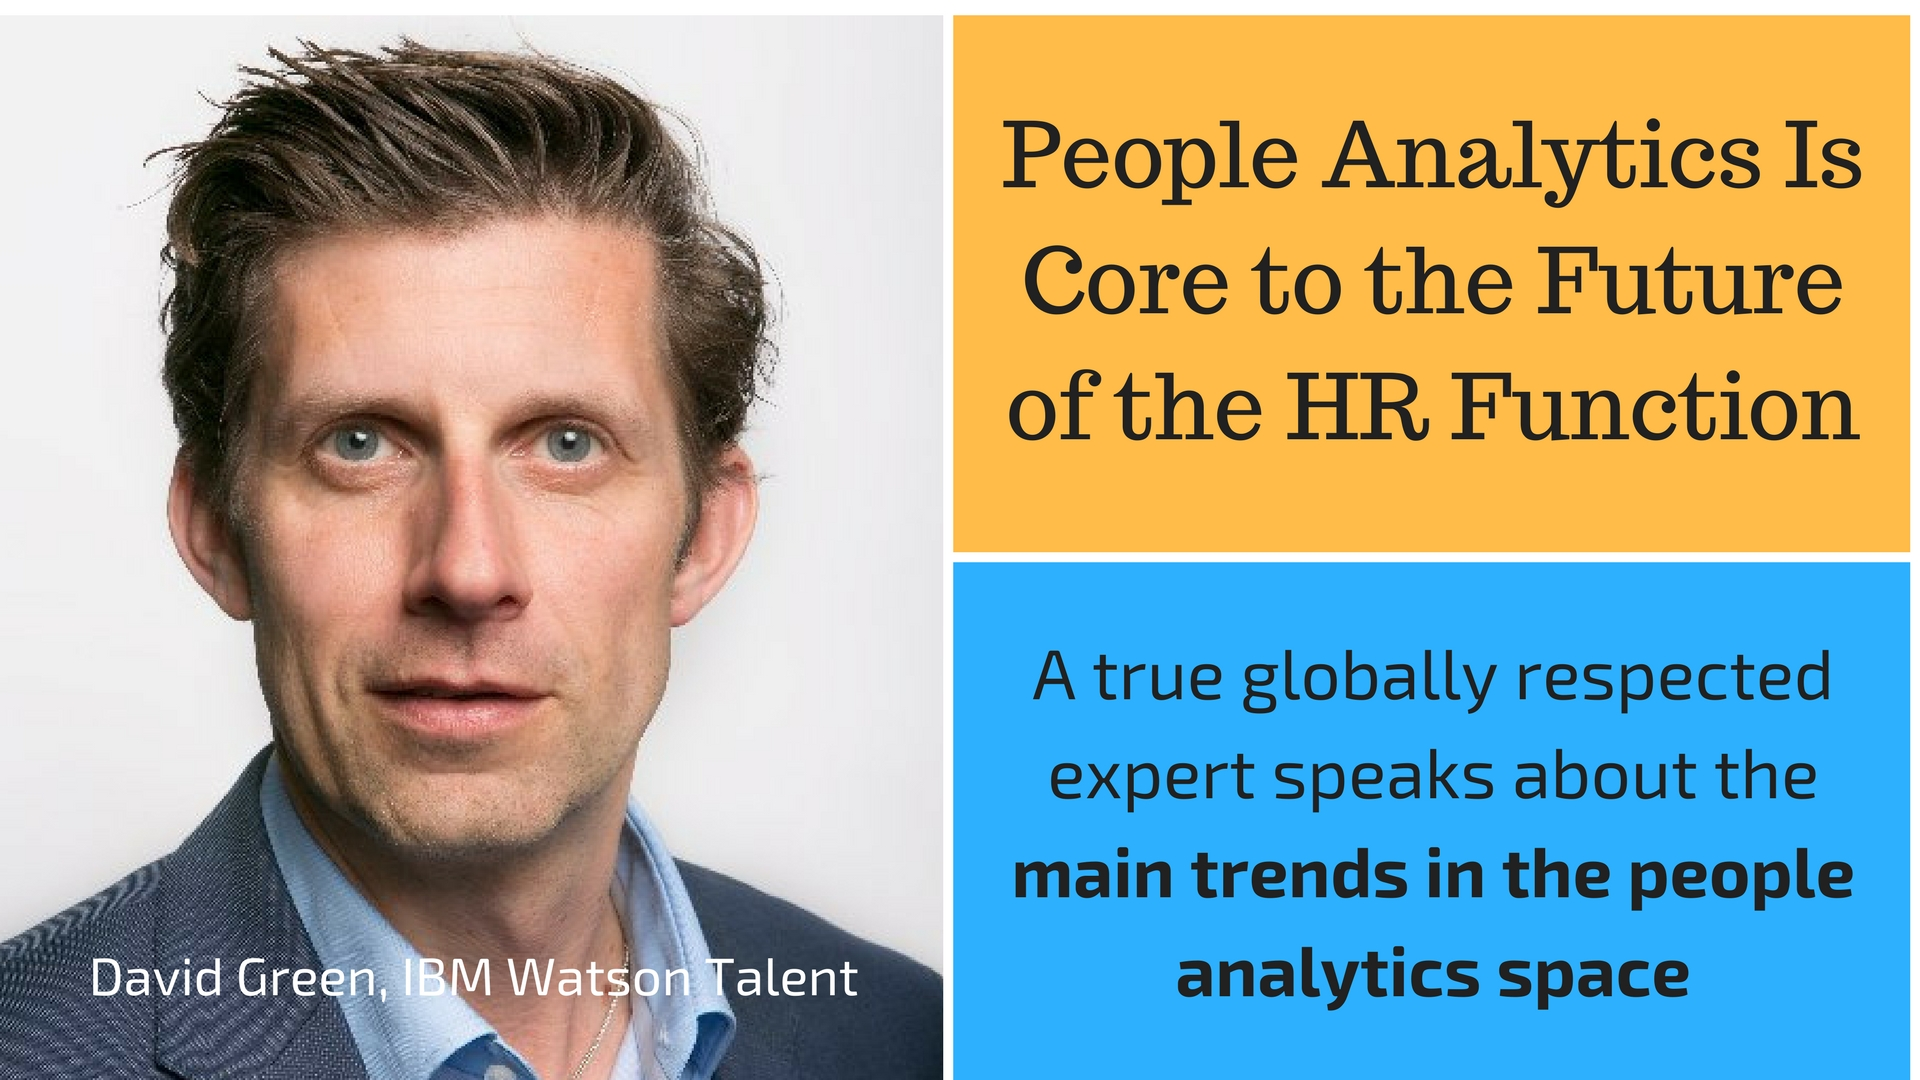 People Analytics Is Core to the Future of the HR Function